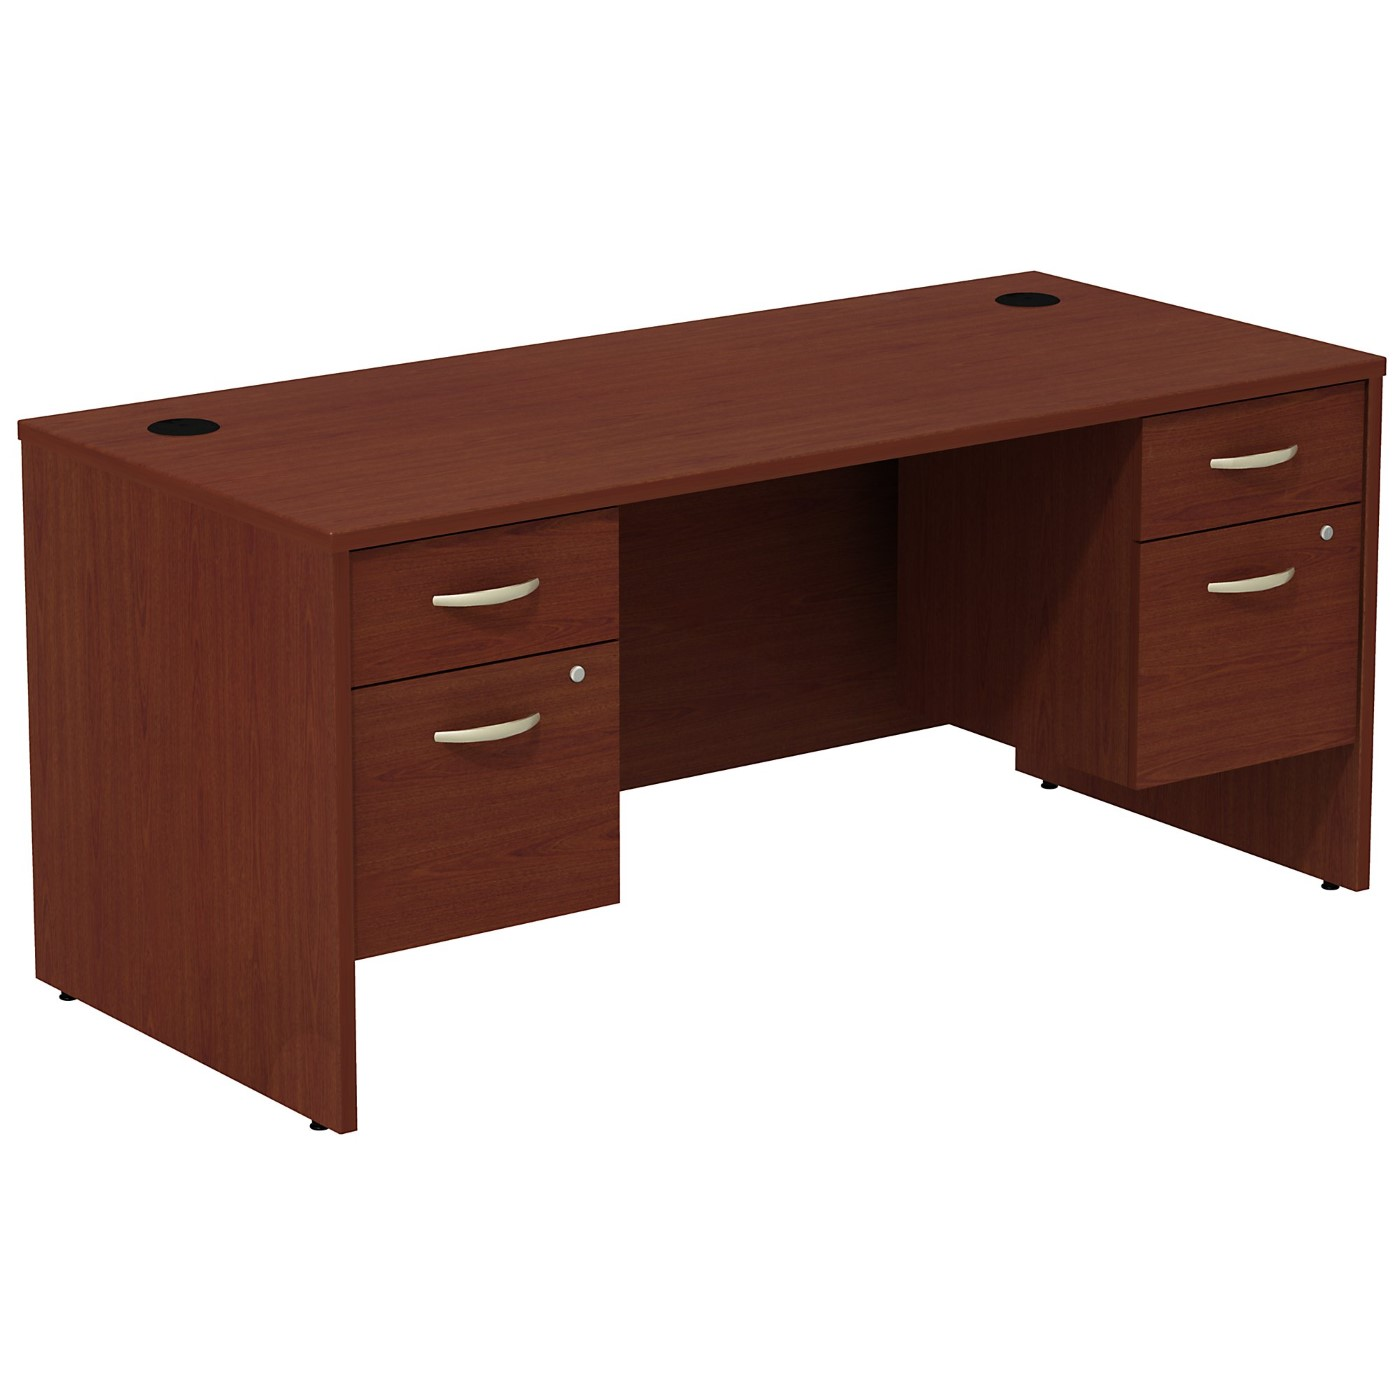 BUSH BUSINESS FURNITURE SERIES C DESK WITH (2) 3/4 PEDESTALS. FREE SHIPPING SALE DEDUCT 10% MORE ENTER '10percent' IN COUPON CODE BOX WHILE CHECKING OUT.